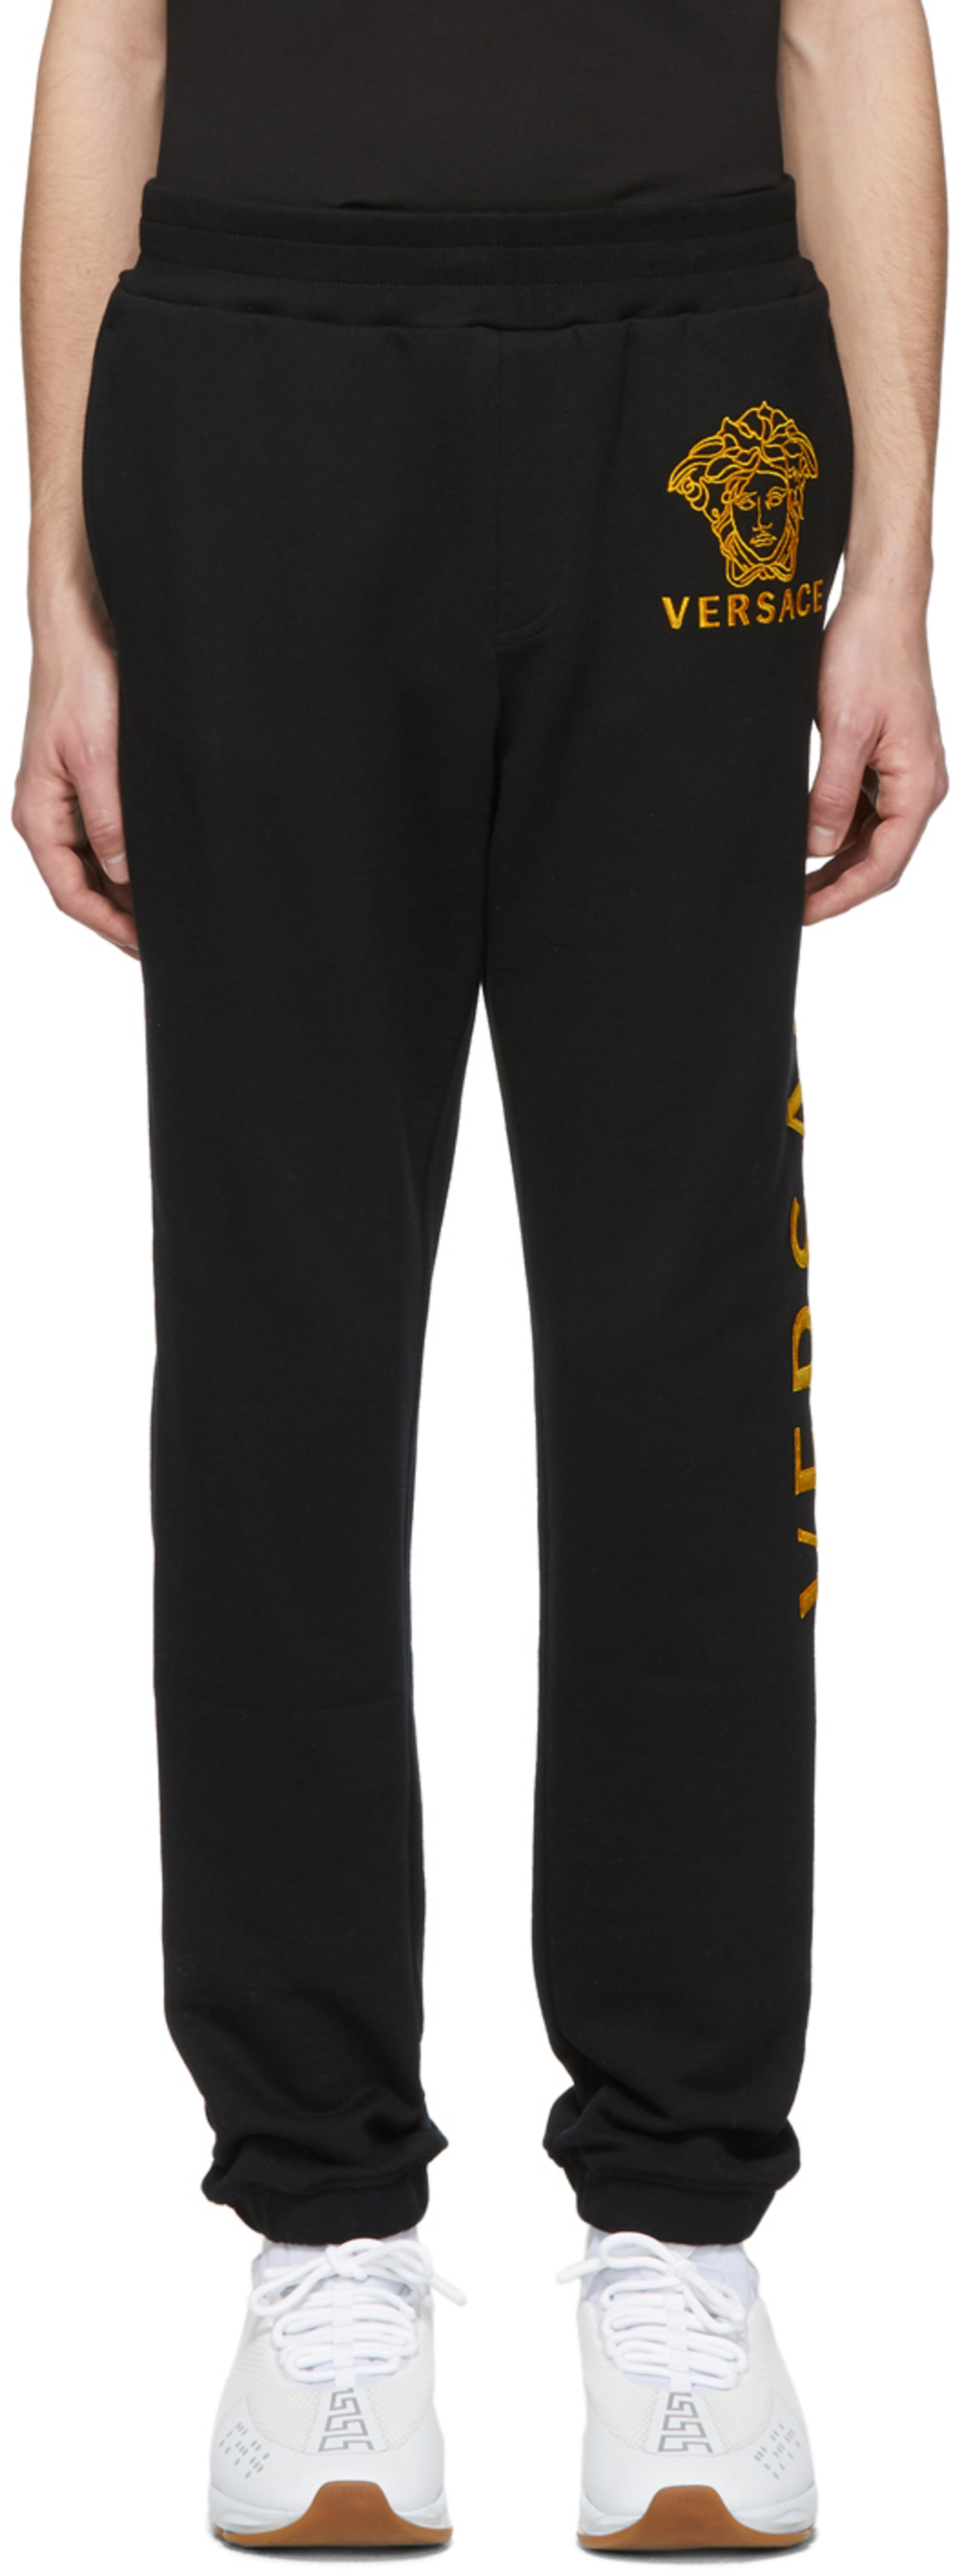 717dba6ee82 Versace Collection pour Hommes